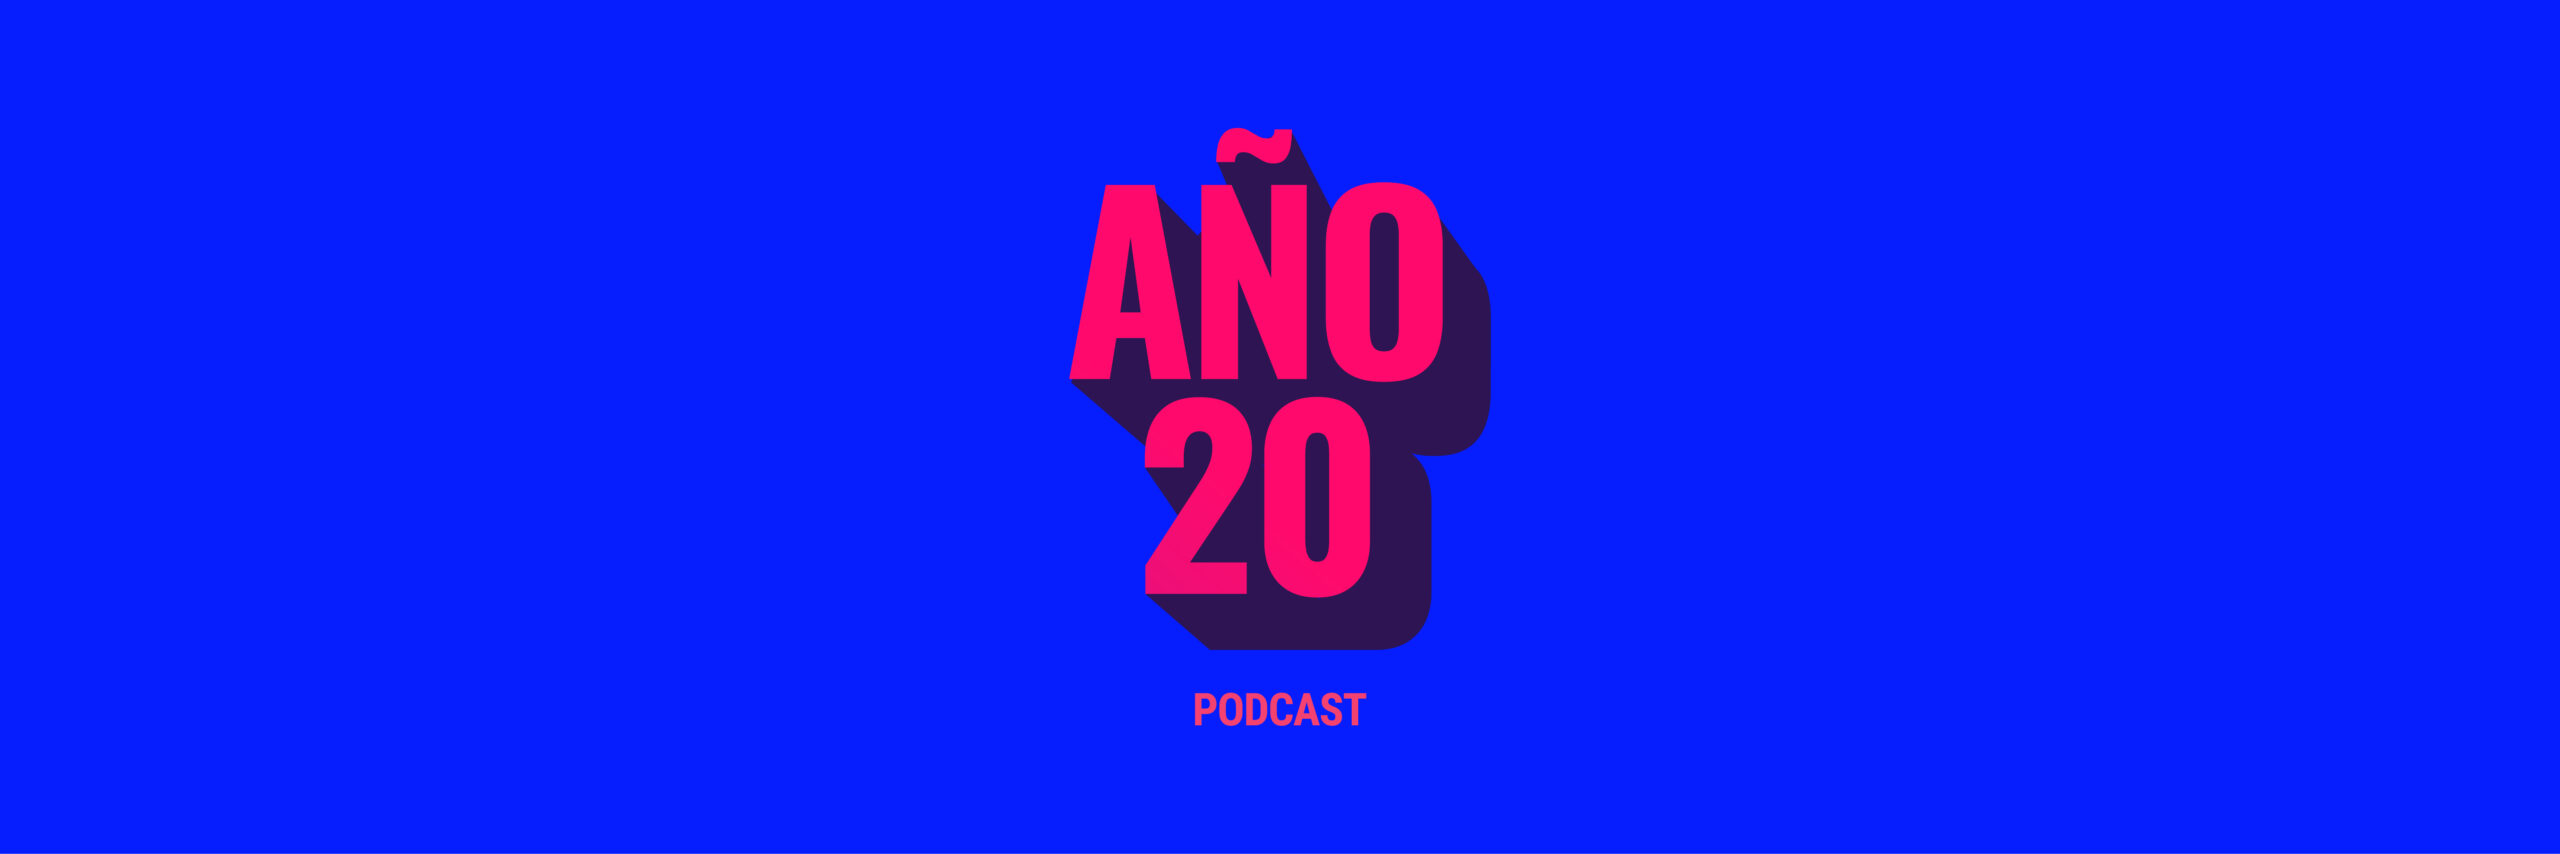 año20 podcast